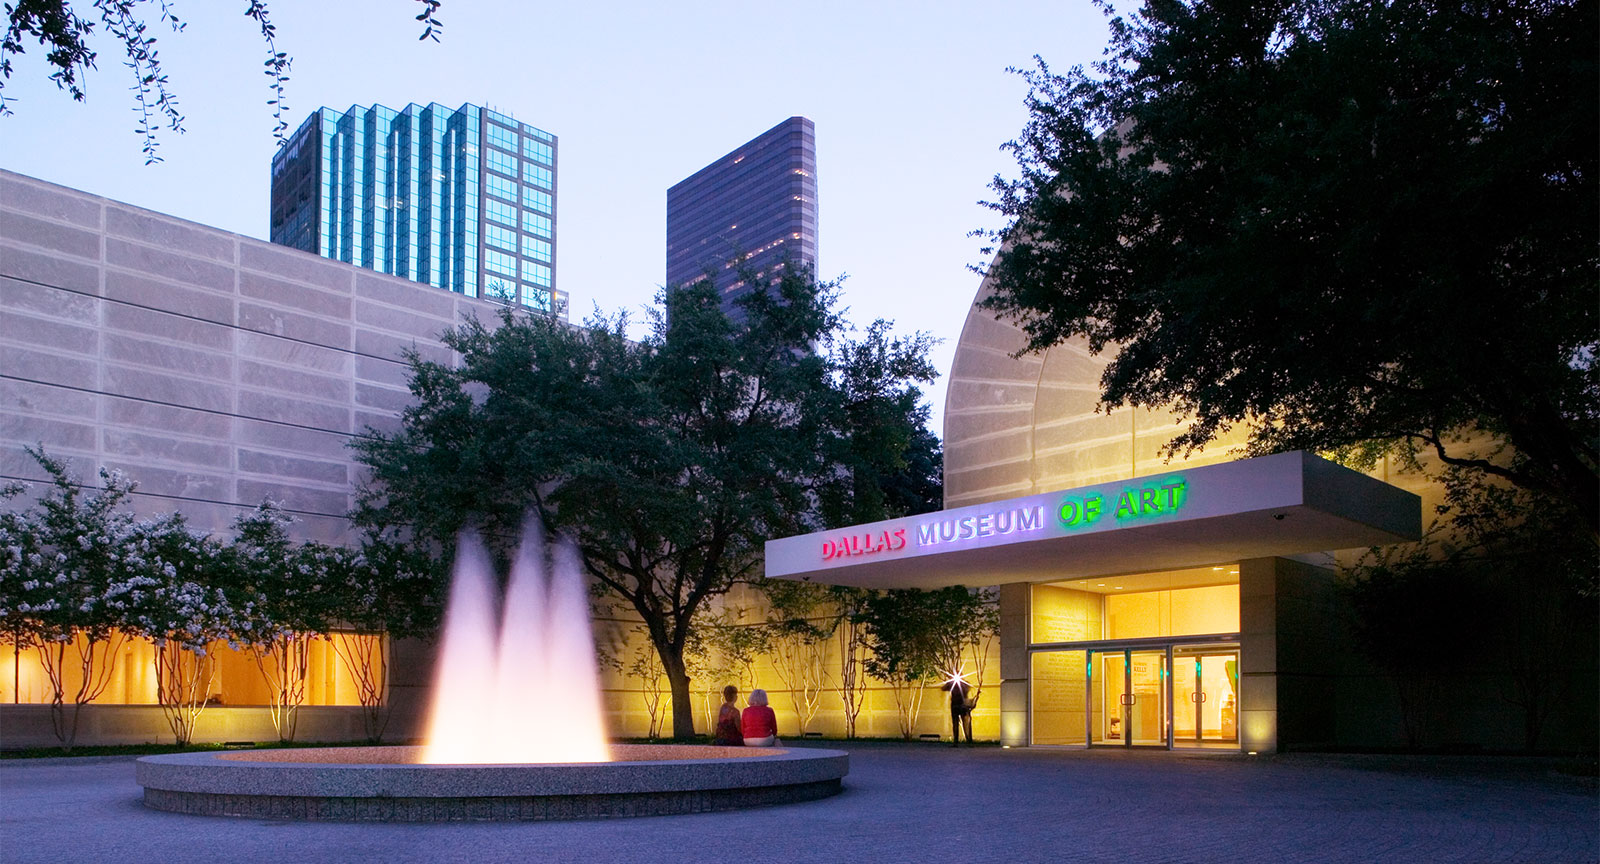 Dallas Museum of Art | Dallas Arts District